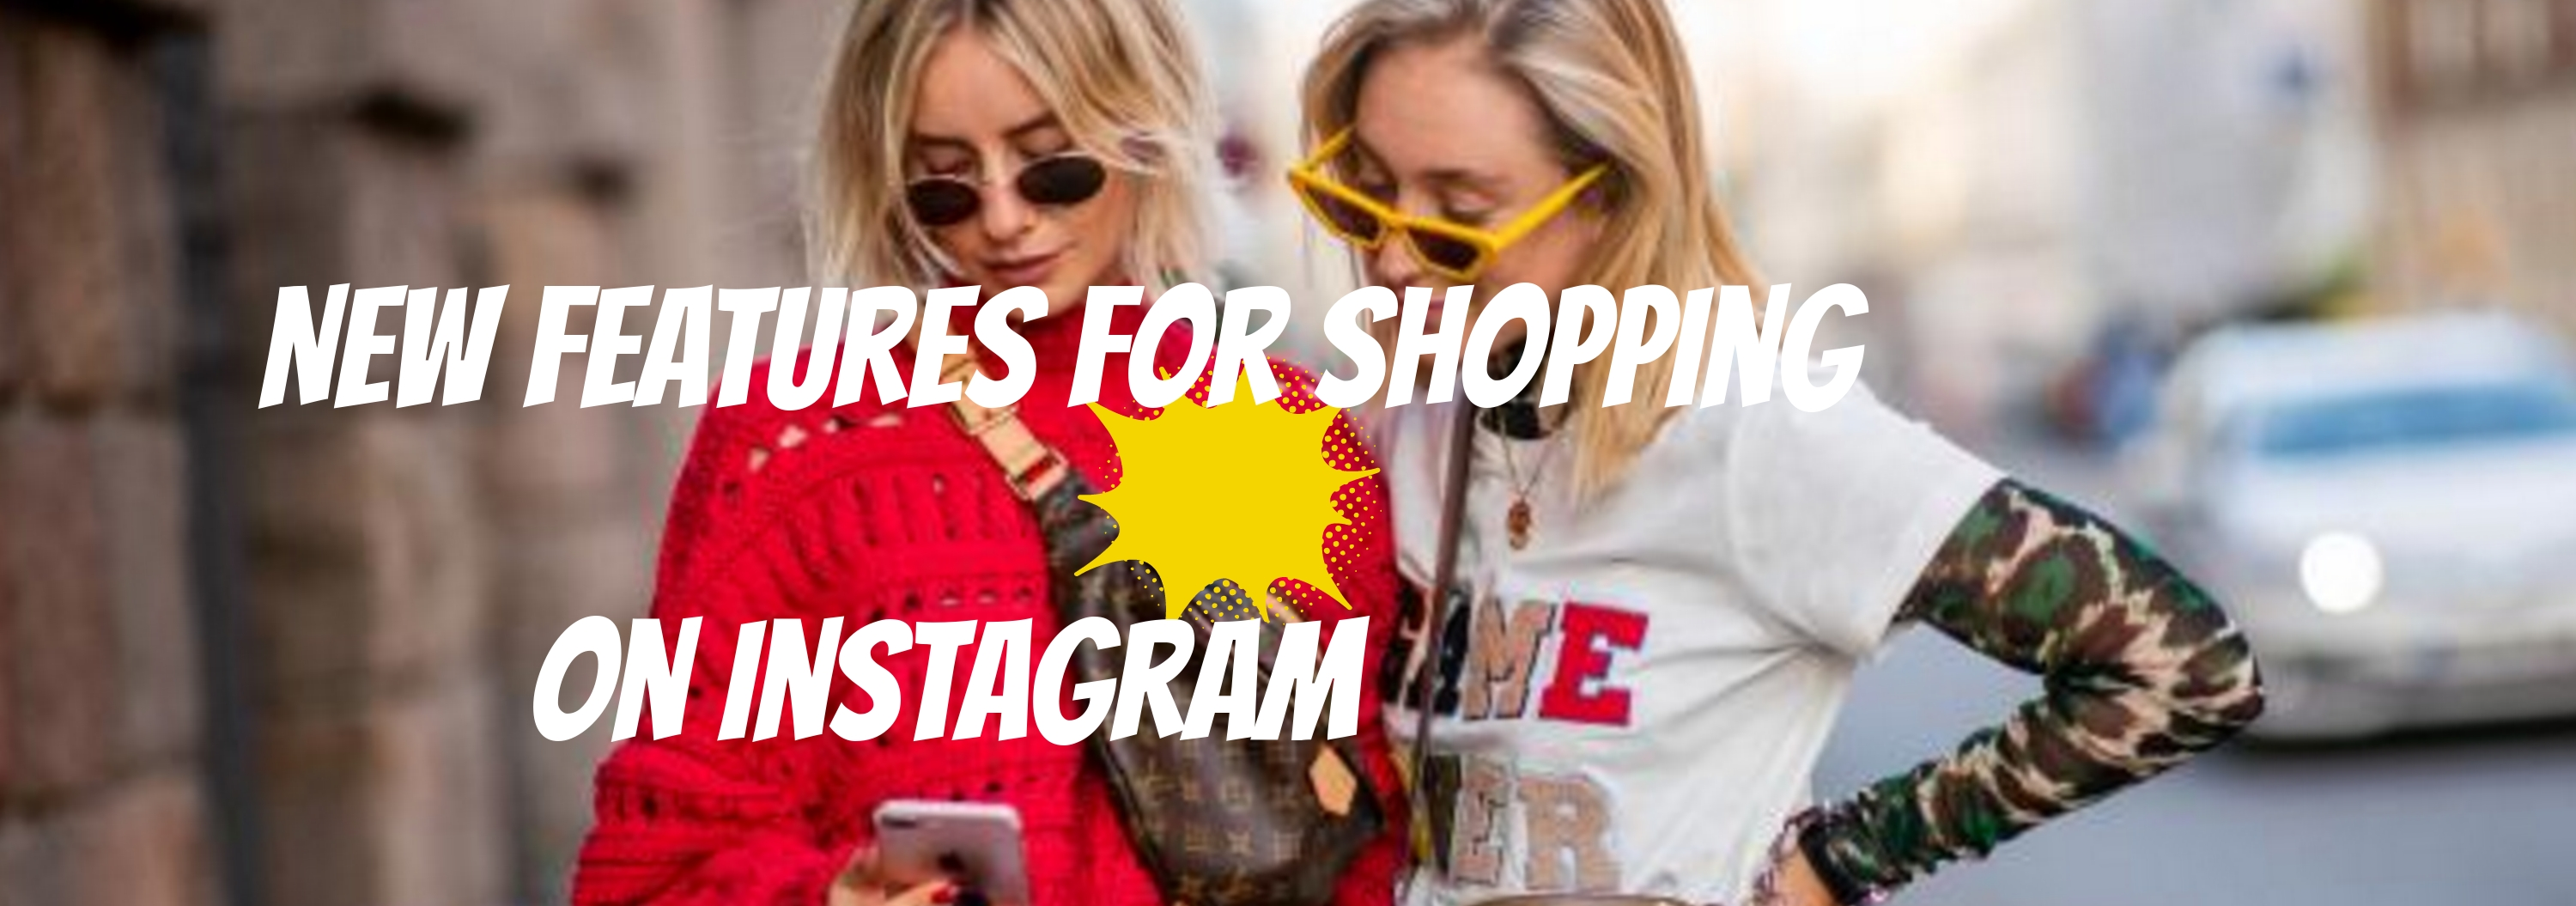 New features for shopping on Instagram